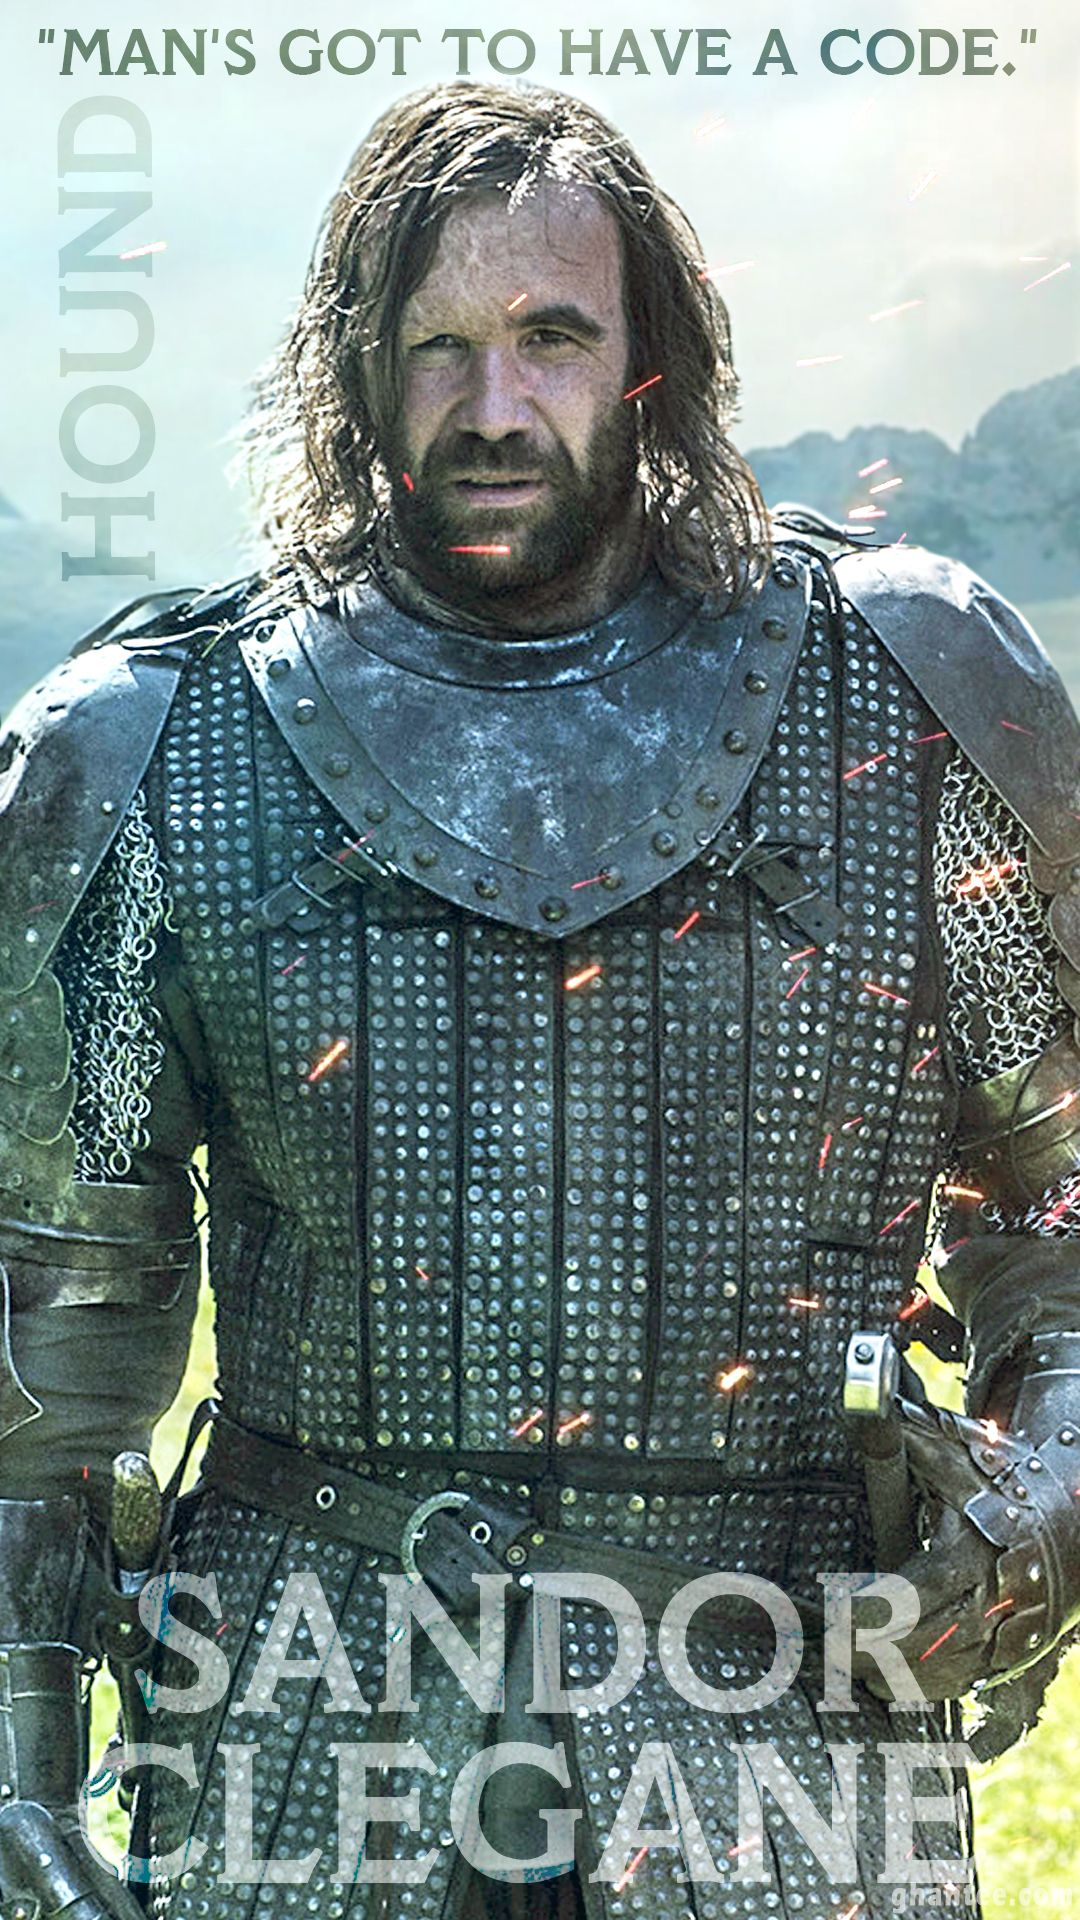 The Hound Got Quotes Wallpaper Sandor Clegane Wallpaper Quotes